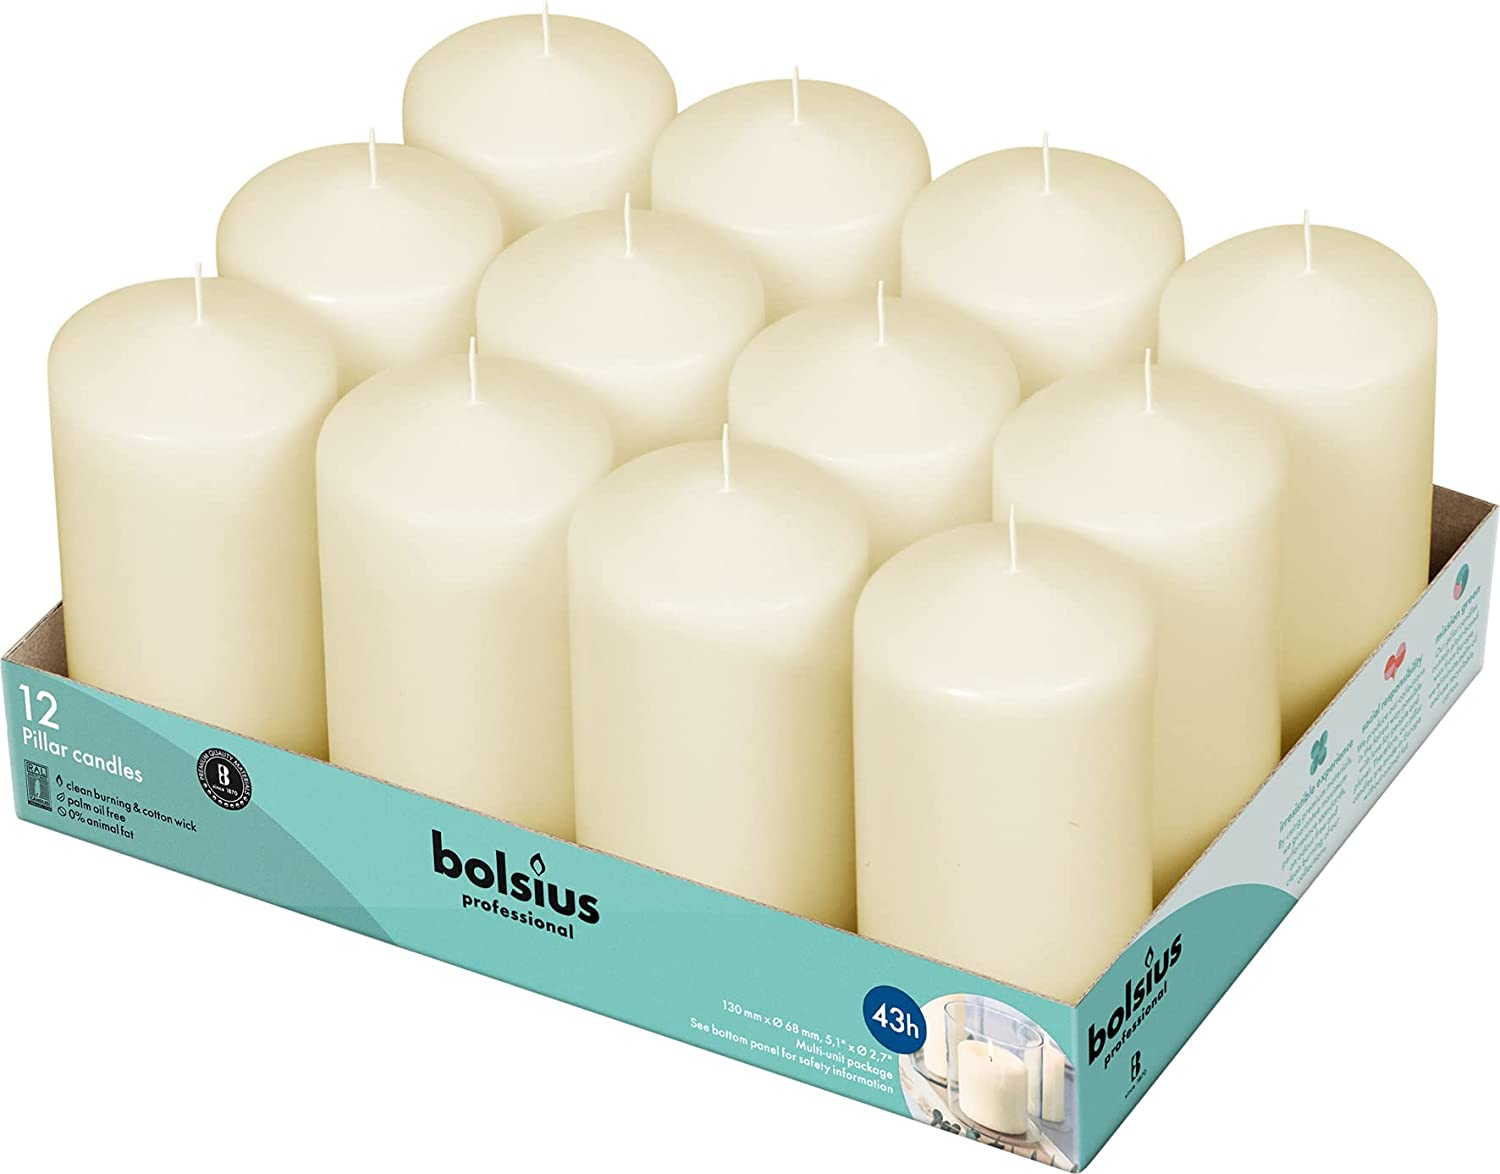 BOLSIUS Set of Credence Ranking TOP9 12 Ivory Pillar 43 Long Hour Candles Unscented -